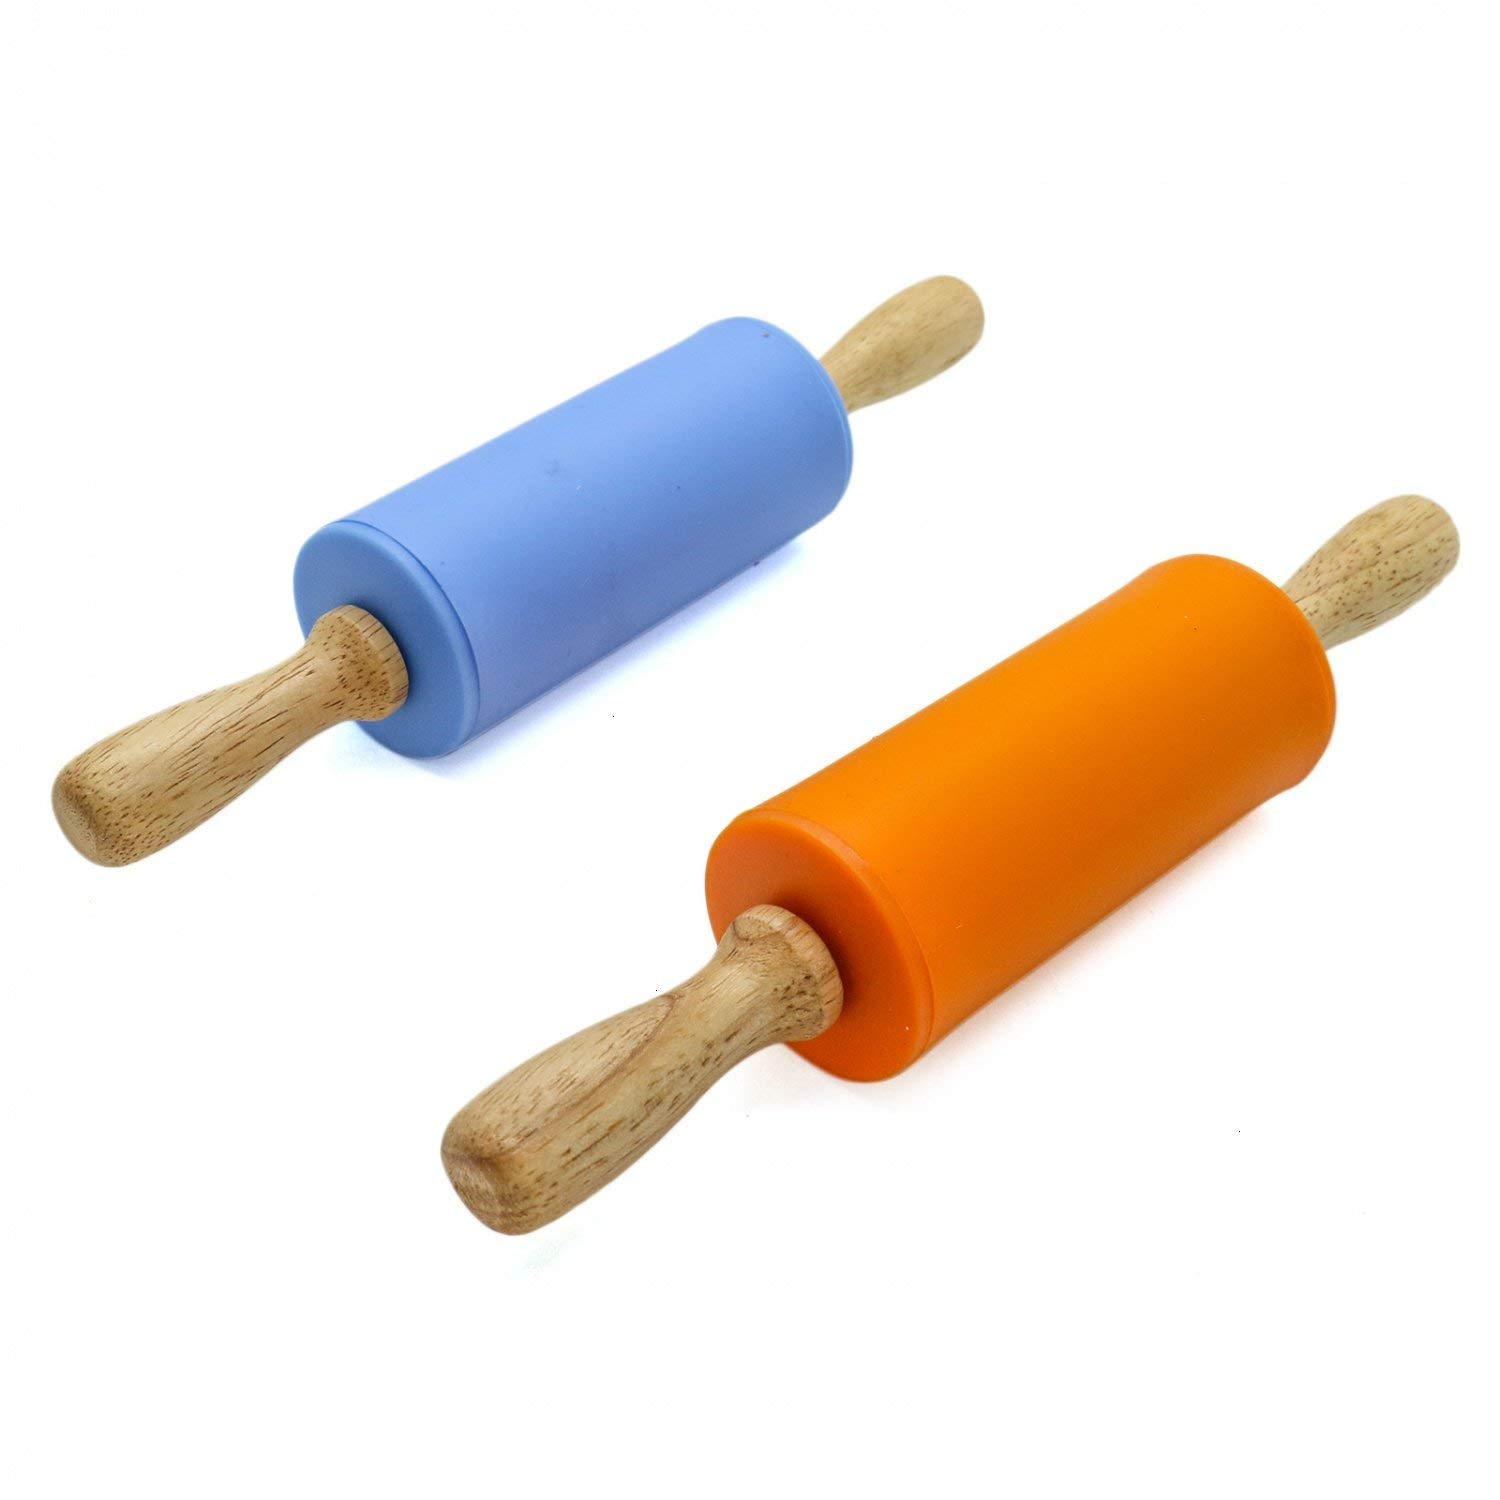 Kitchen Dining Rolling Pins Vanzavanzu Wood Dough Roller For Kids Sleek And Sturdy Mini T Wooden Rolling Pins For Baking Non Stick Eco Friendly And Safe Suitable For Smaller Hands Pastry Pizza Roller